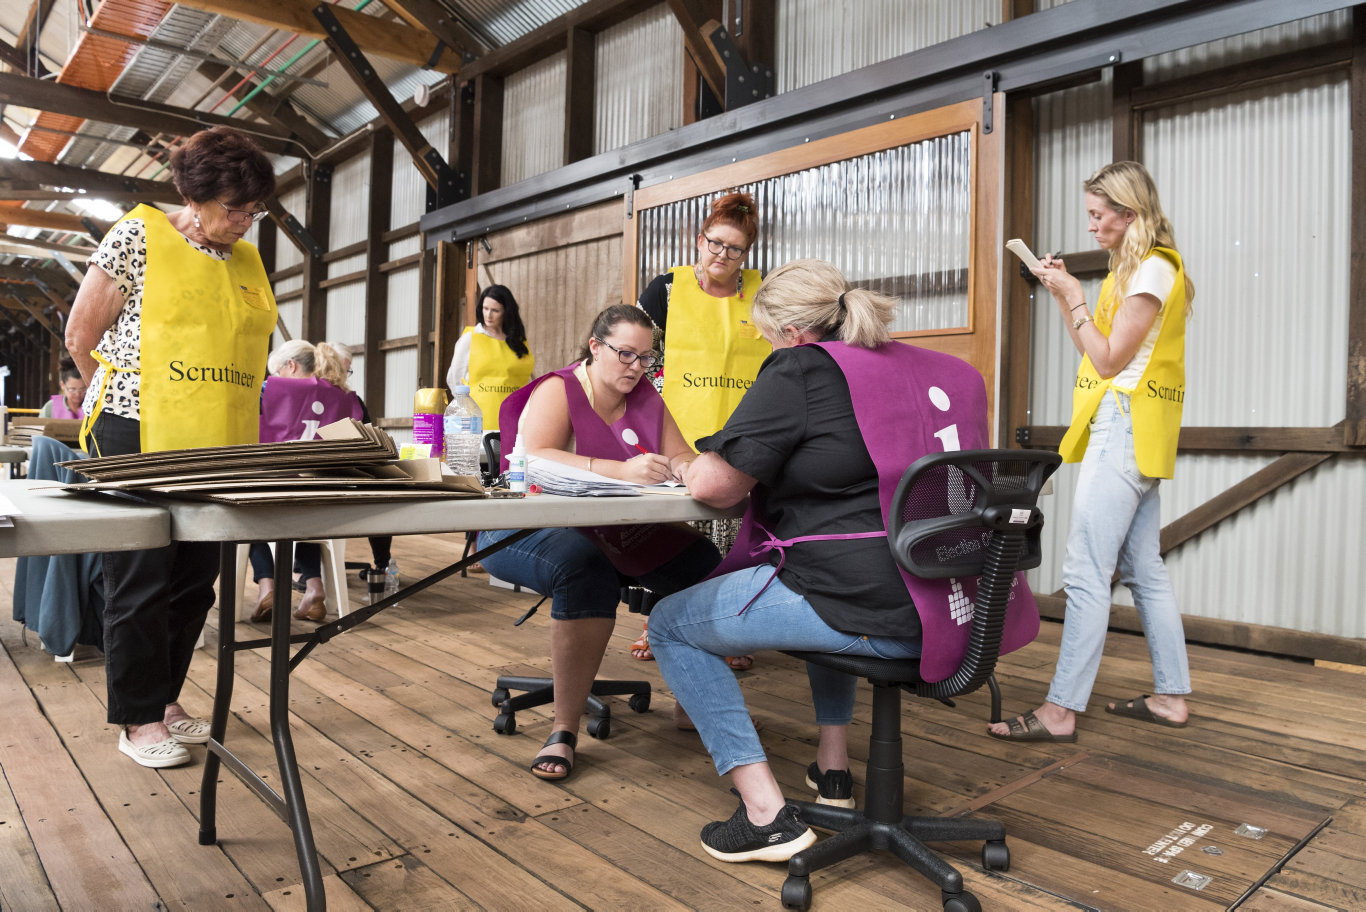 Vote counting in the Toowoomba Regional Council local government 2020 election continues at The Goods Shed, Sunday, March 29, 2020. Picture: Kevin Farmer